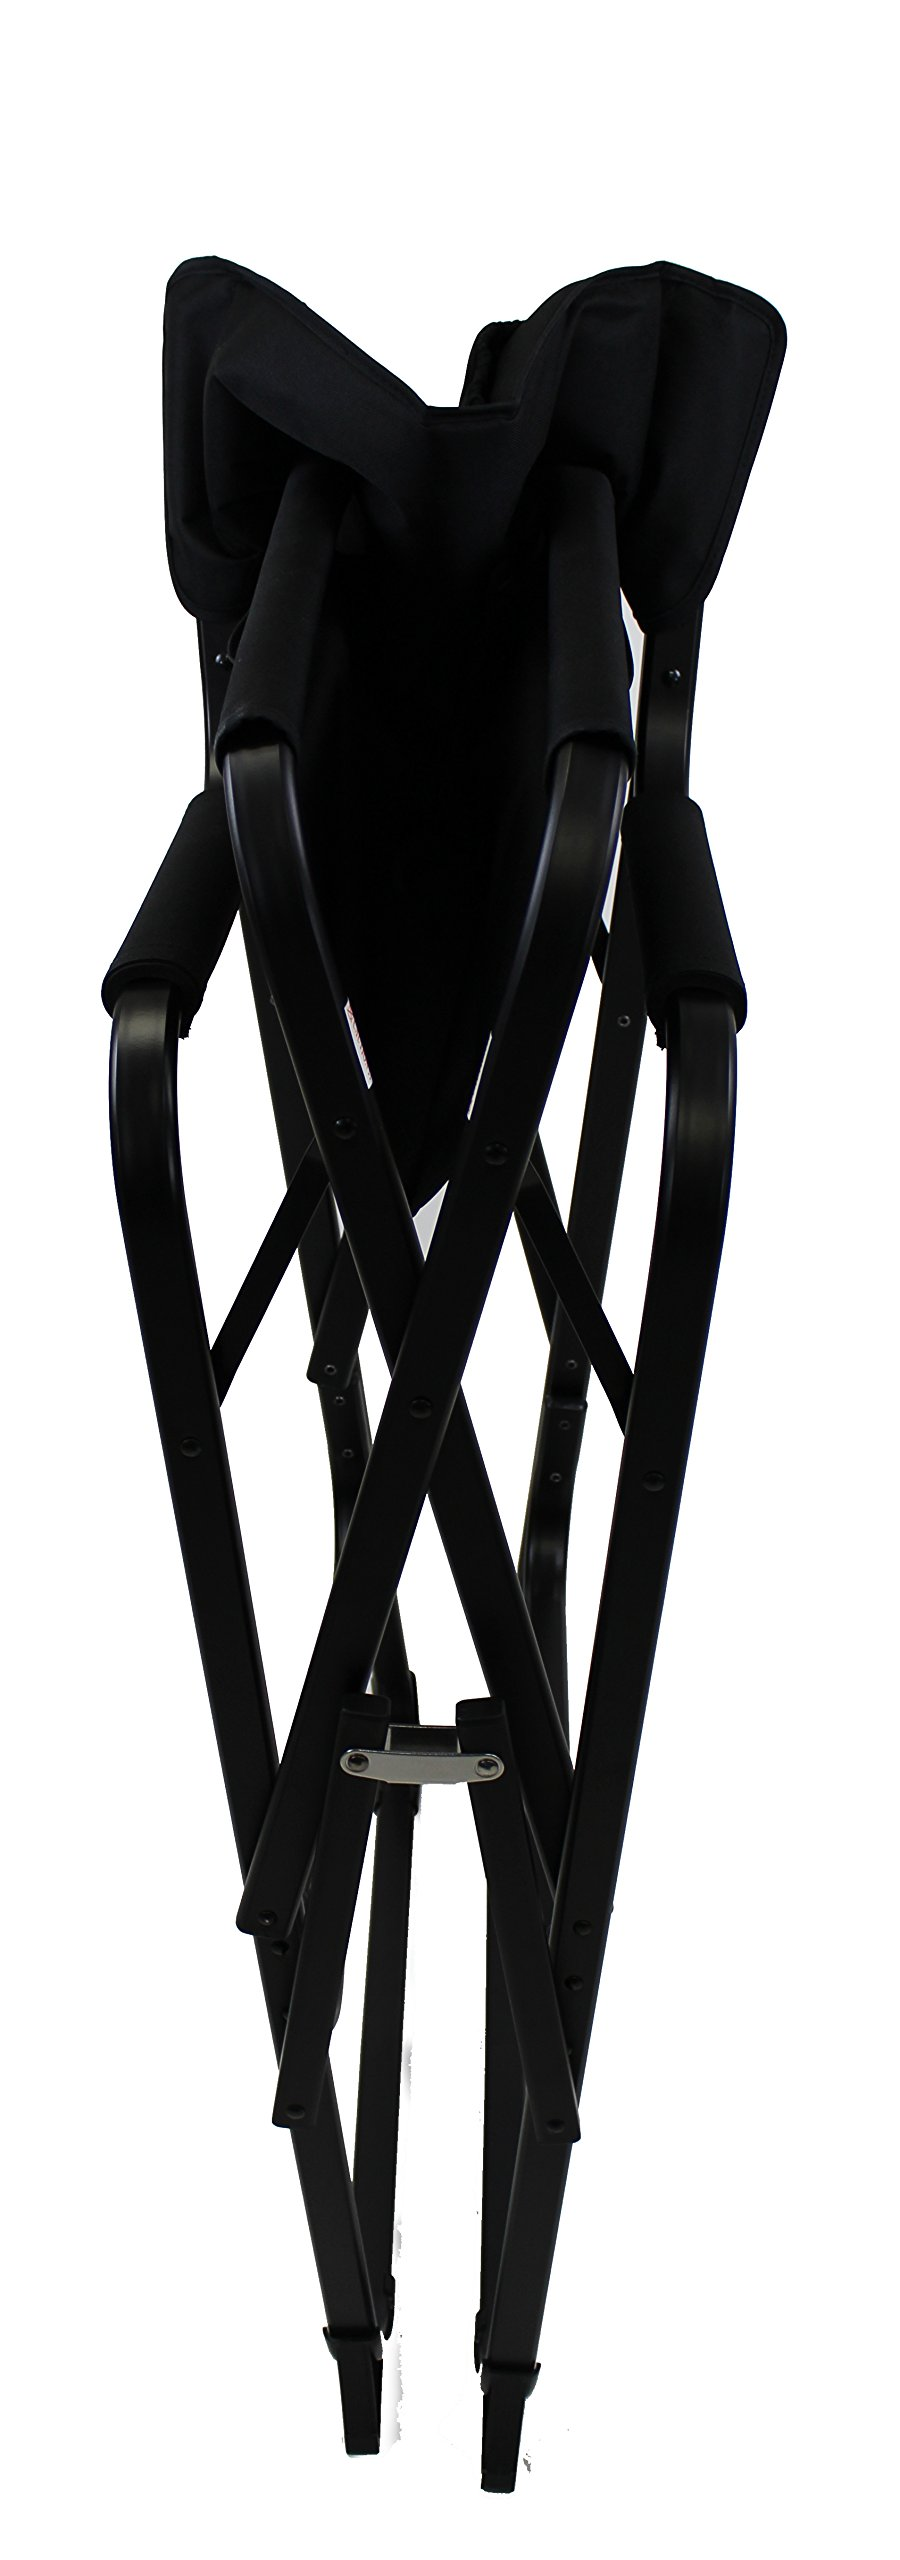 TWO PACK World Outdoor Products Lightweight PROFESSIONAL EDITION Tall Directors Chair